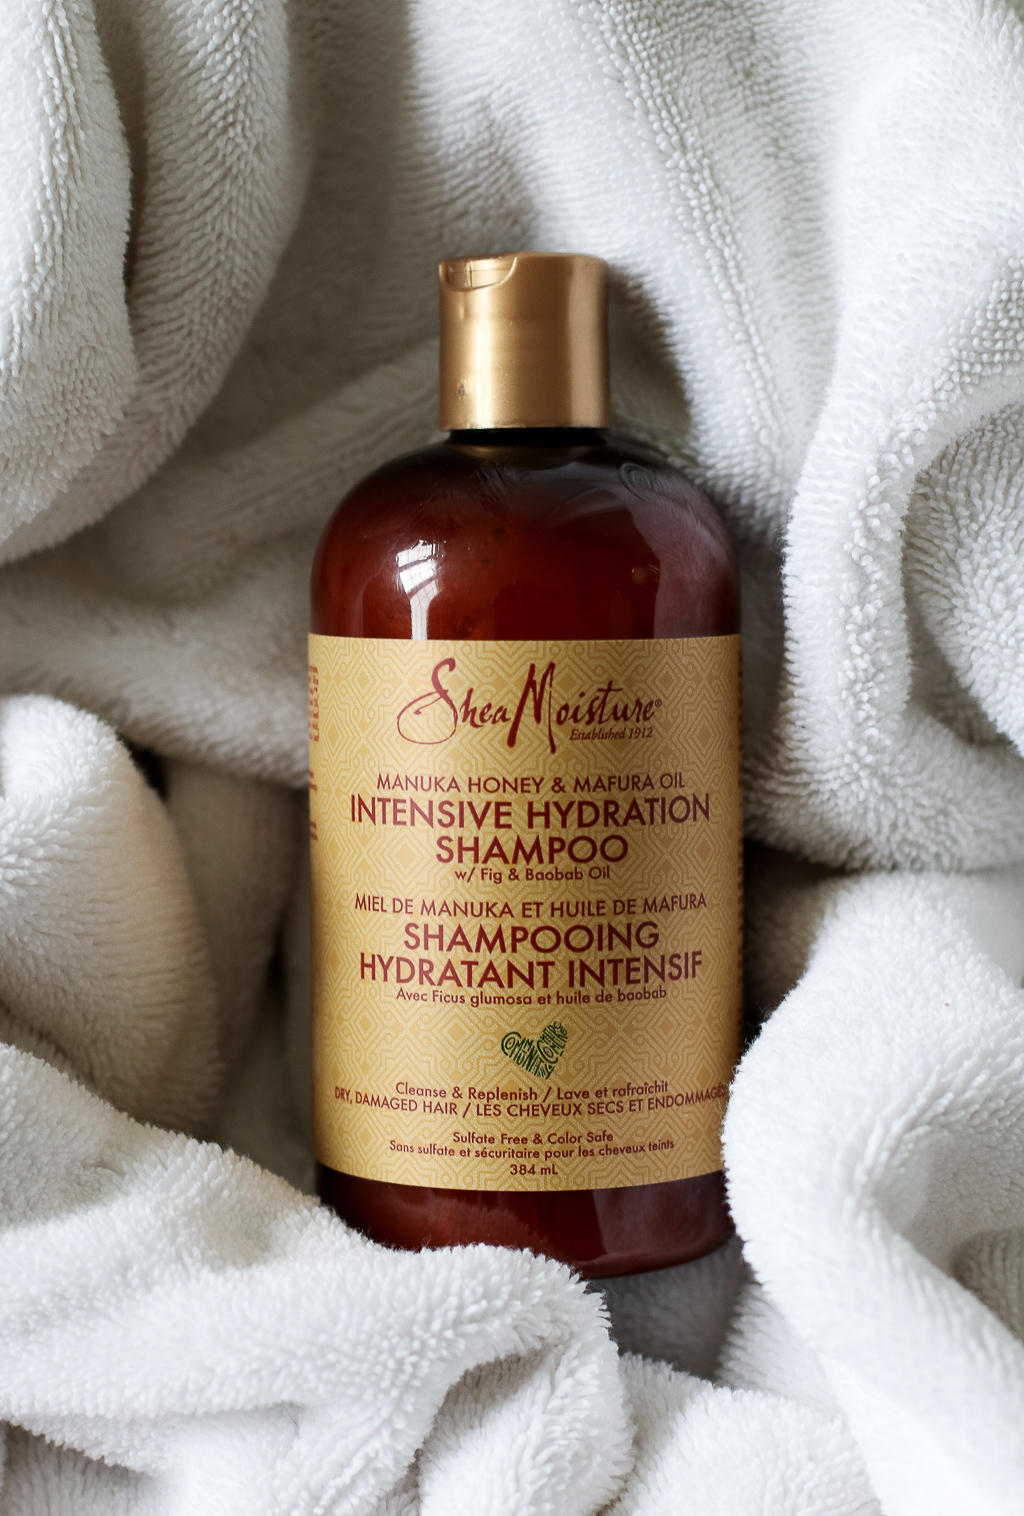 5 Things No One Tells You About Dry Hair - Shea Moisture | Style Domination by Dominique Baker